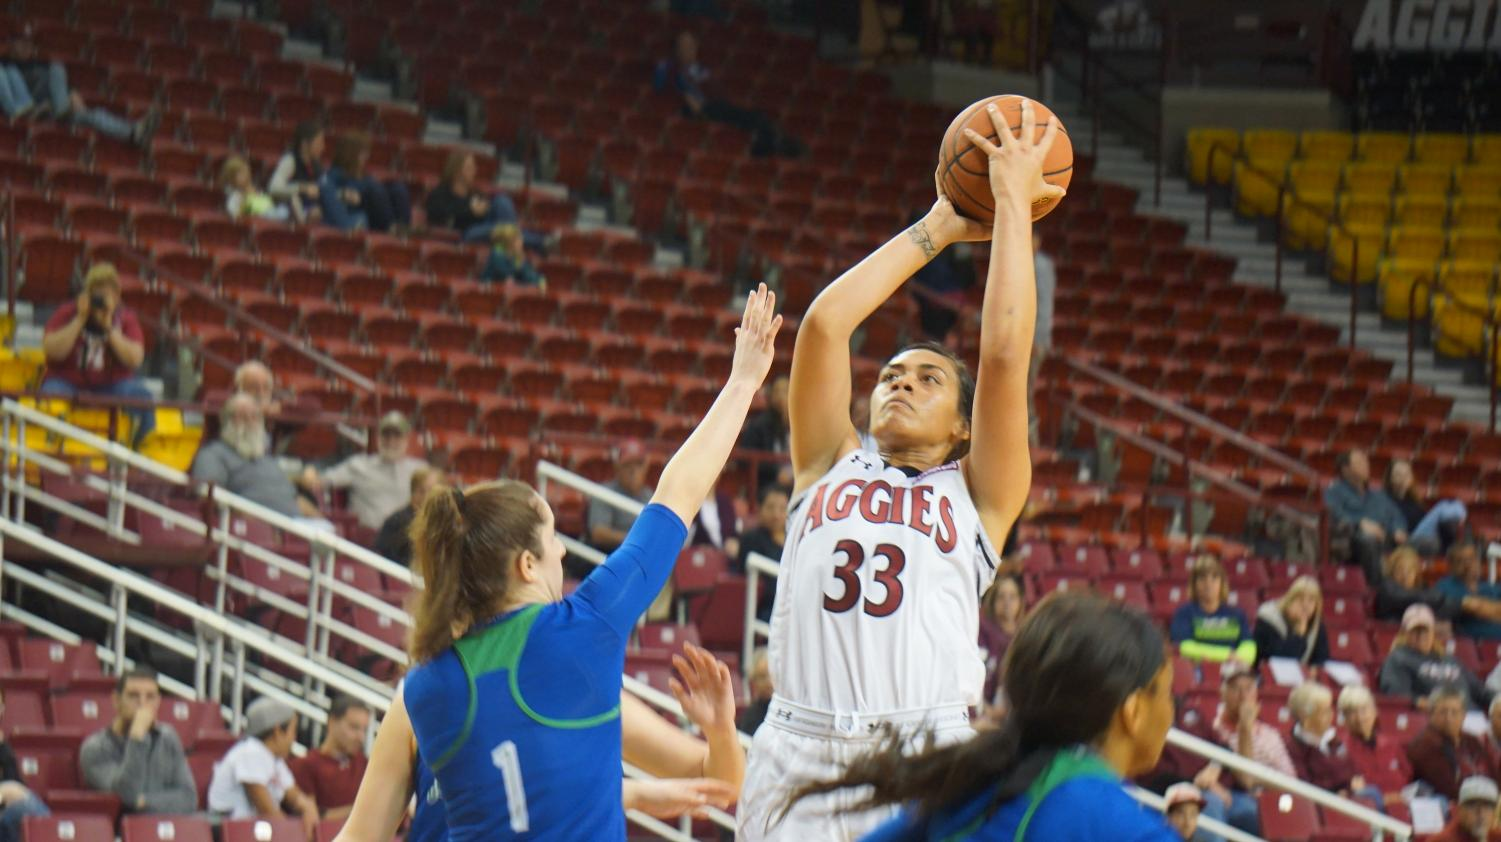 Jeneva Toilolo and the Aggies improve to 2-2 on the year with the win over Texas A&M - Corpus Christi.